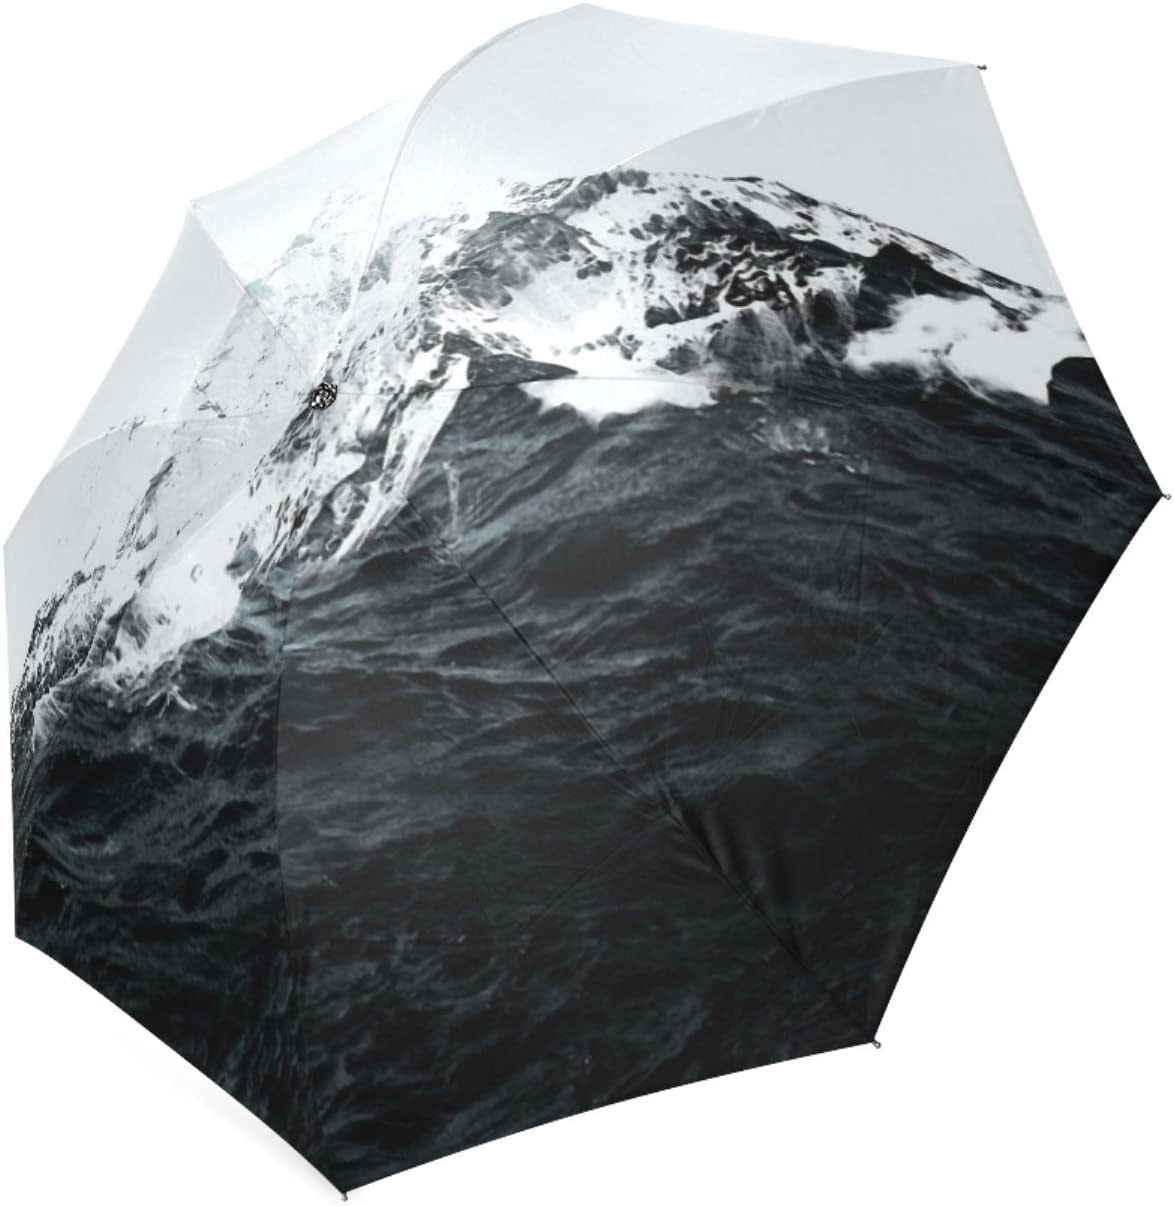 Personalized Those Waves Were Like Mountains Sun Rain Travel Umbrella Waterproof